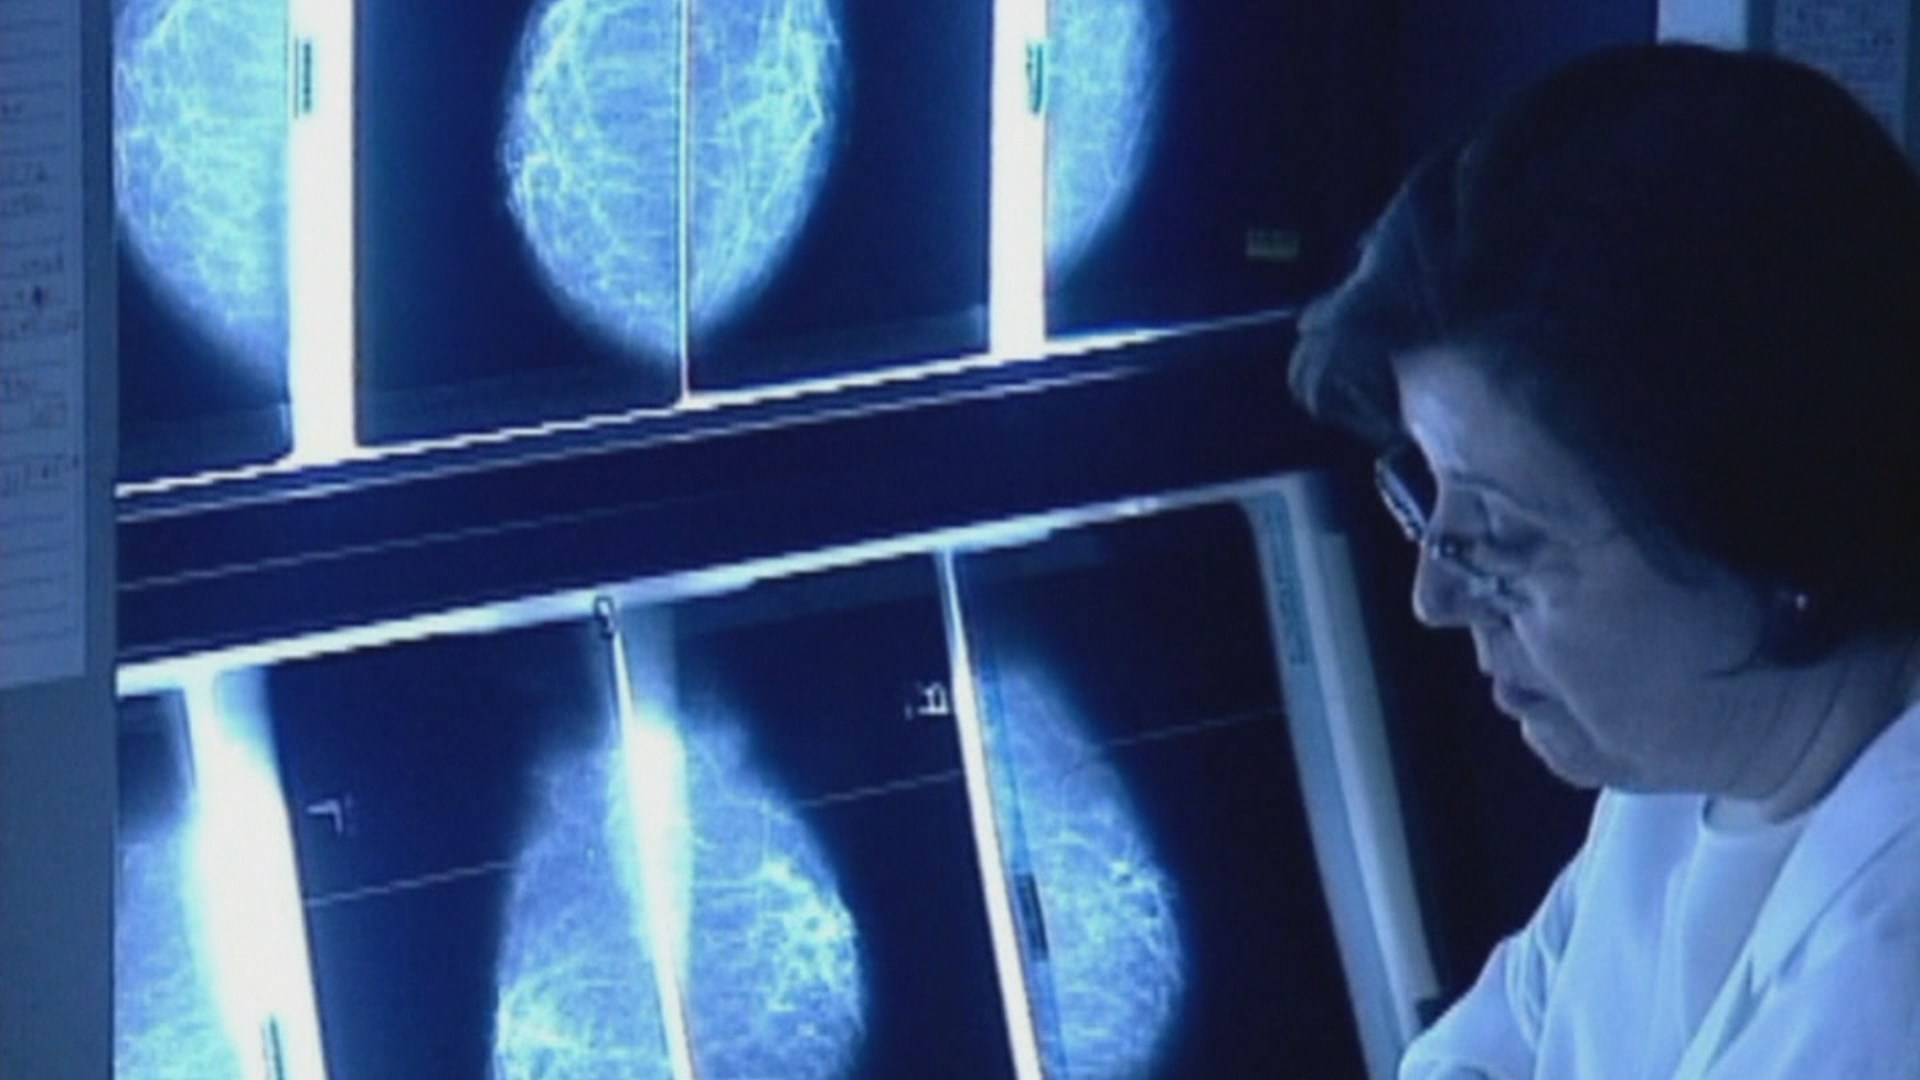 Scientists use novel computer modeling to detect breast cancer recurrence – WISH-TV | Indianapolis News | Indiana Weather